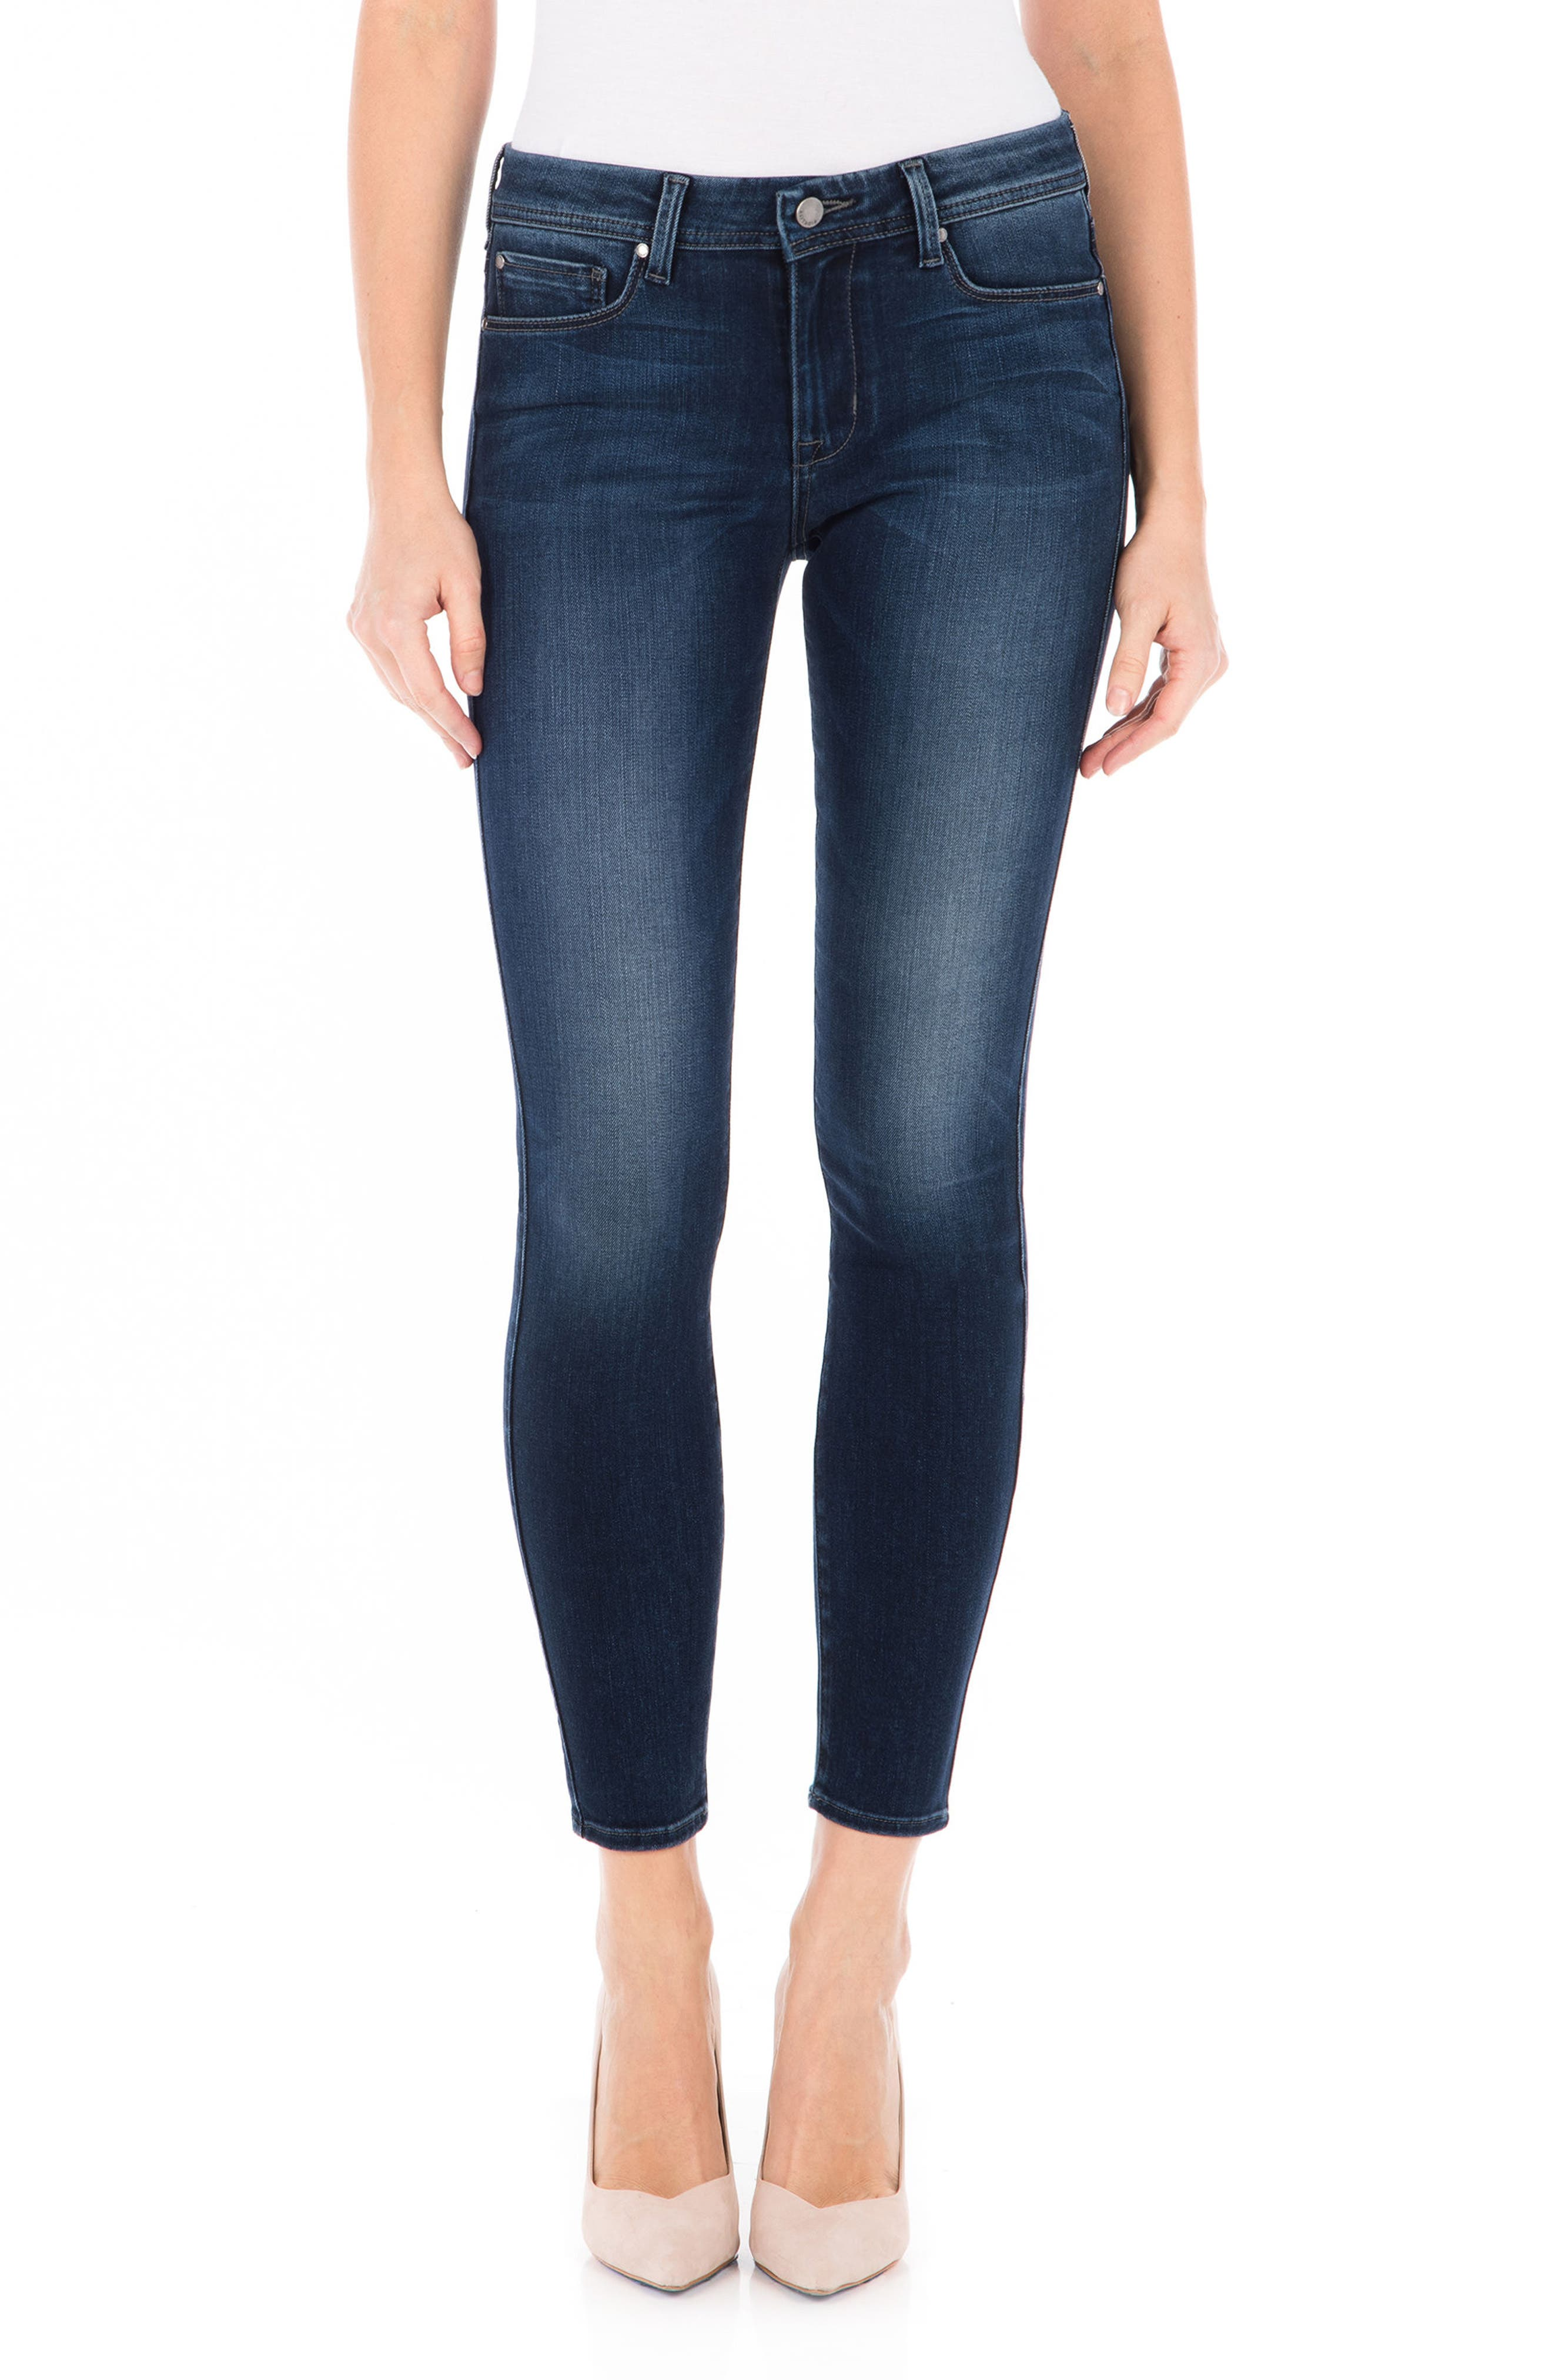 Sola Skinny Jeans,                         Main,                         color, Blue Suede